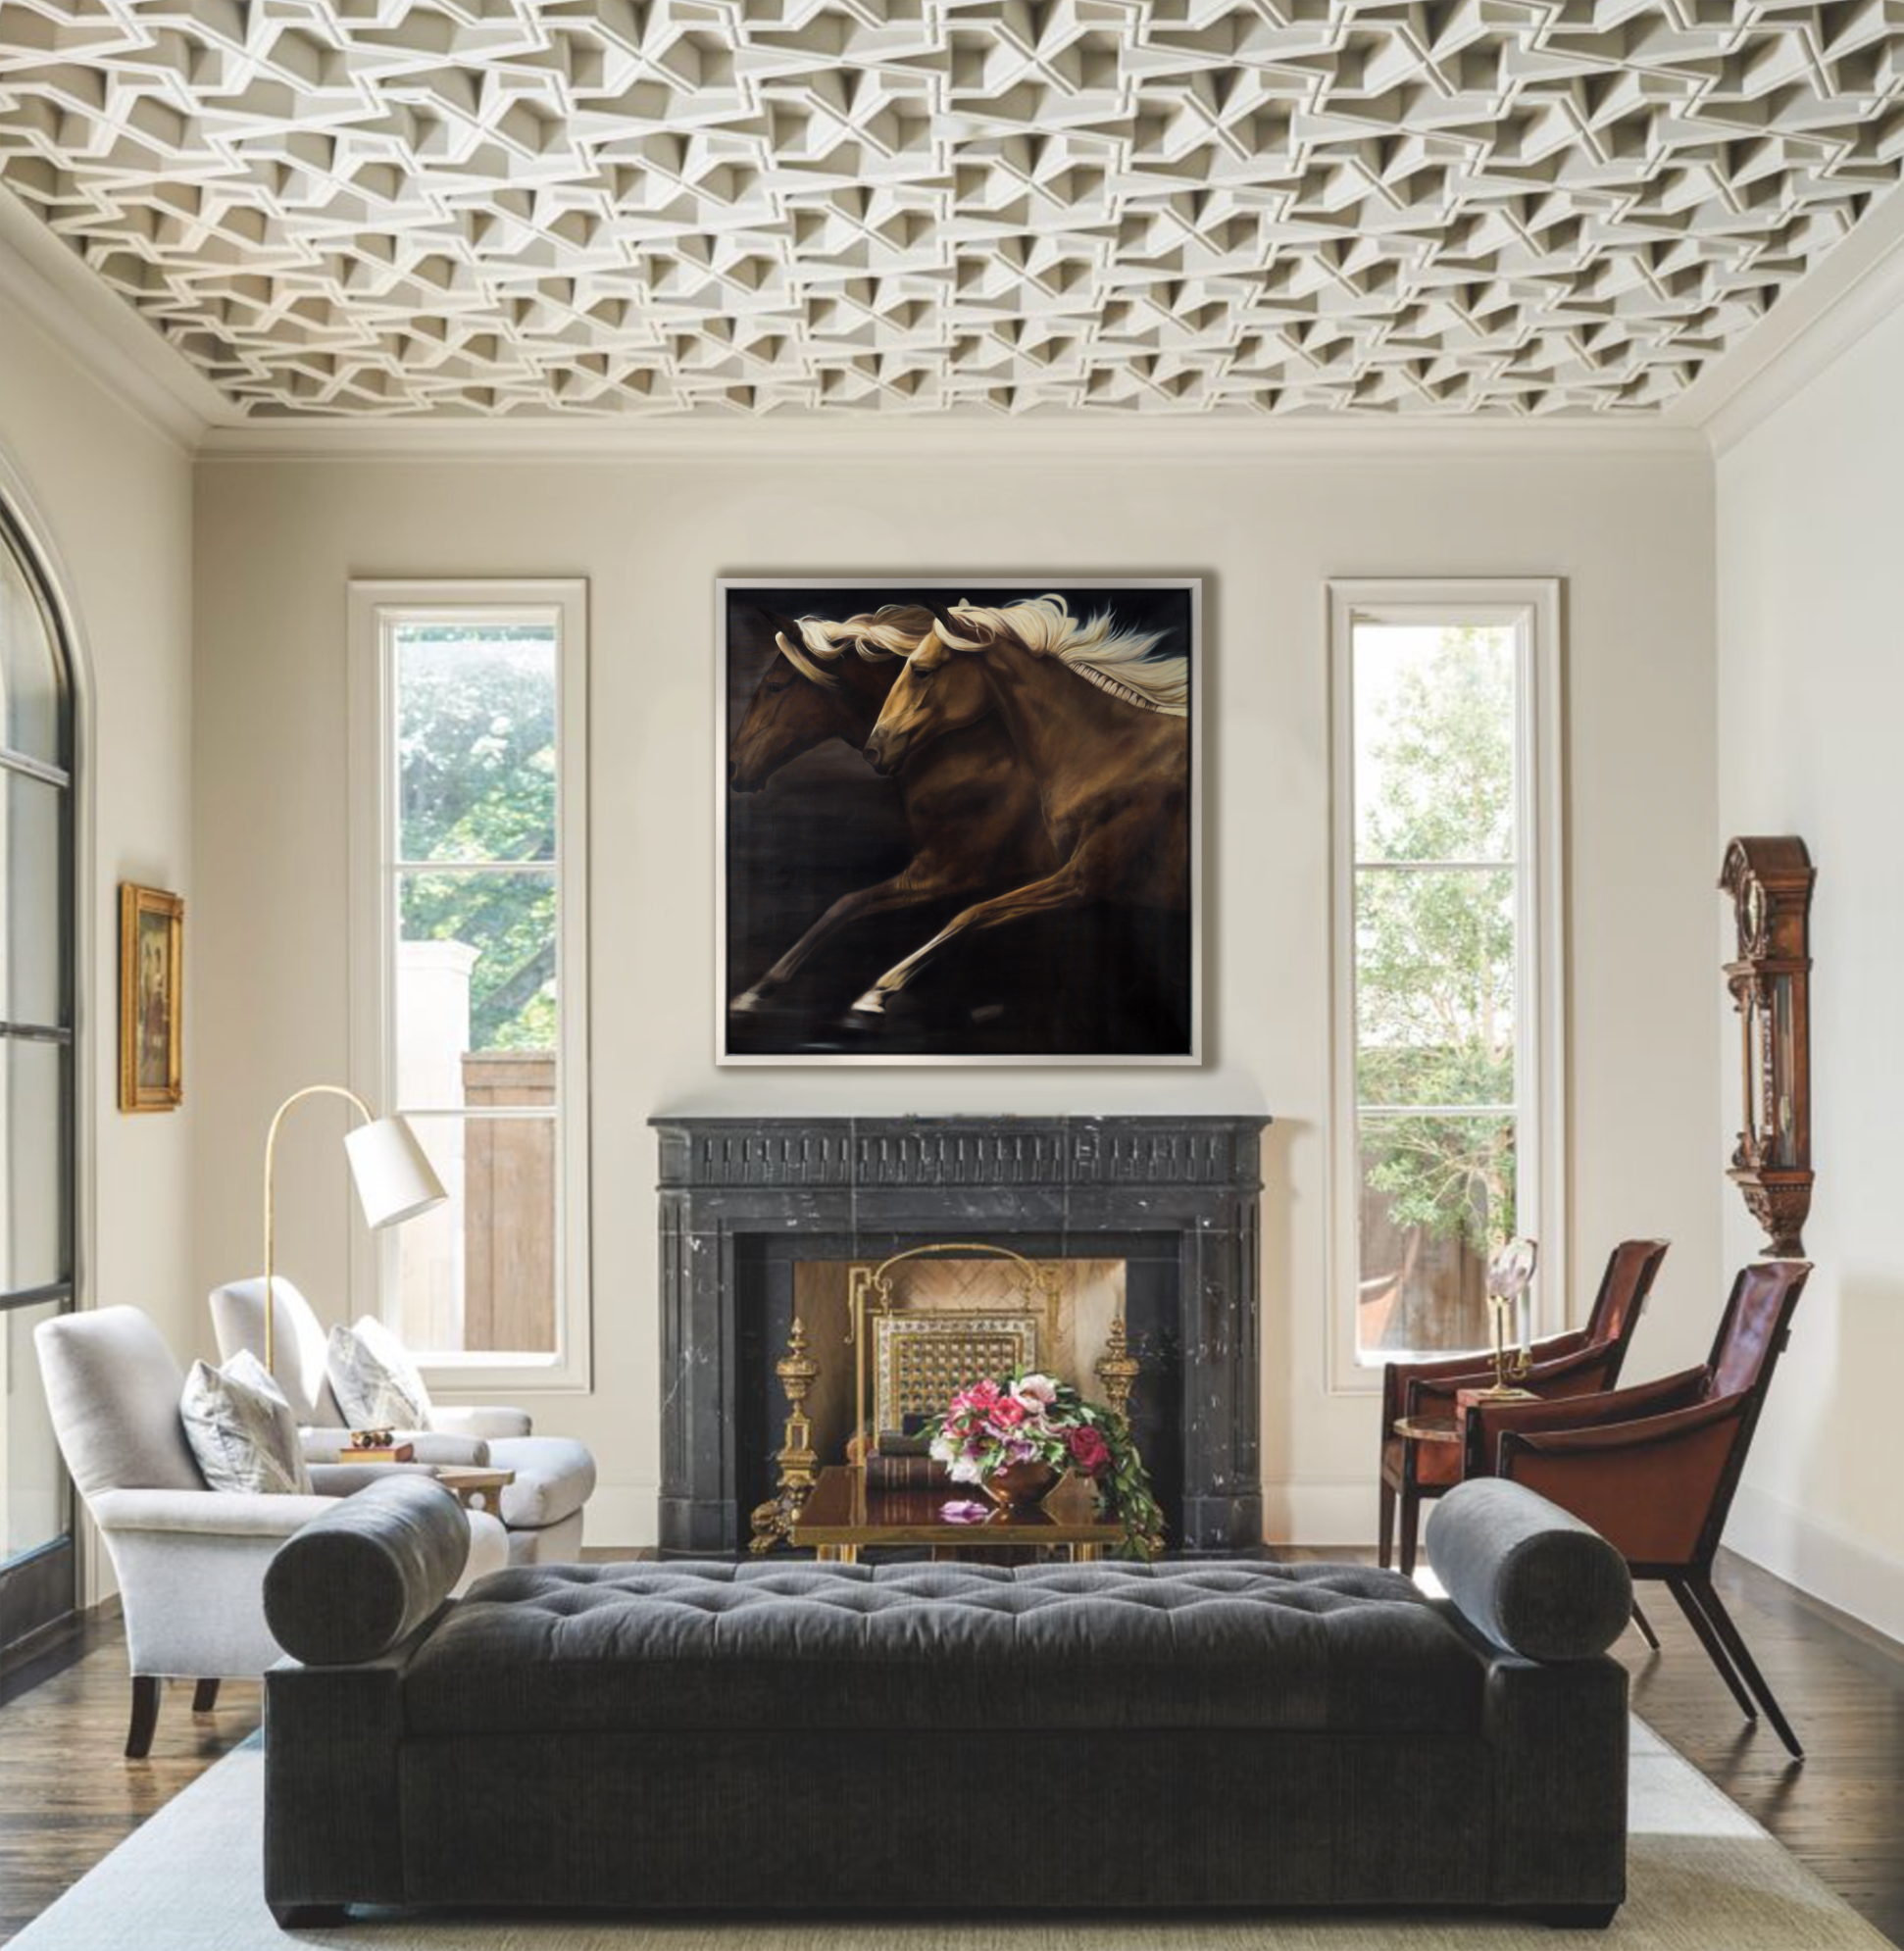 leroy, wild horses, intricate ceiling